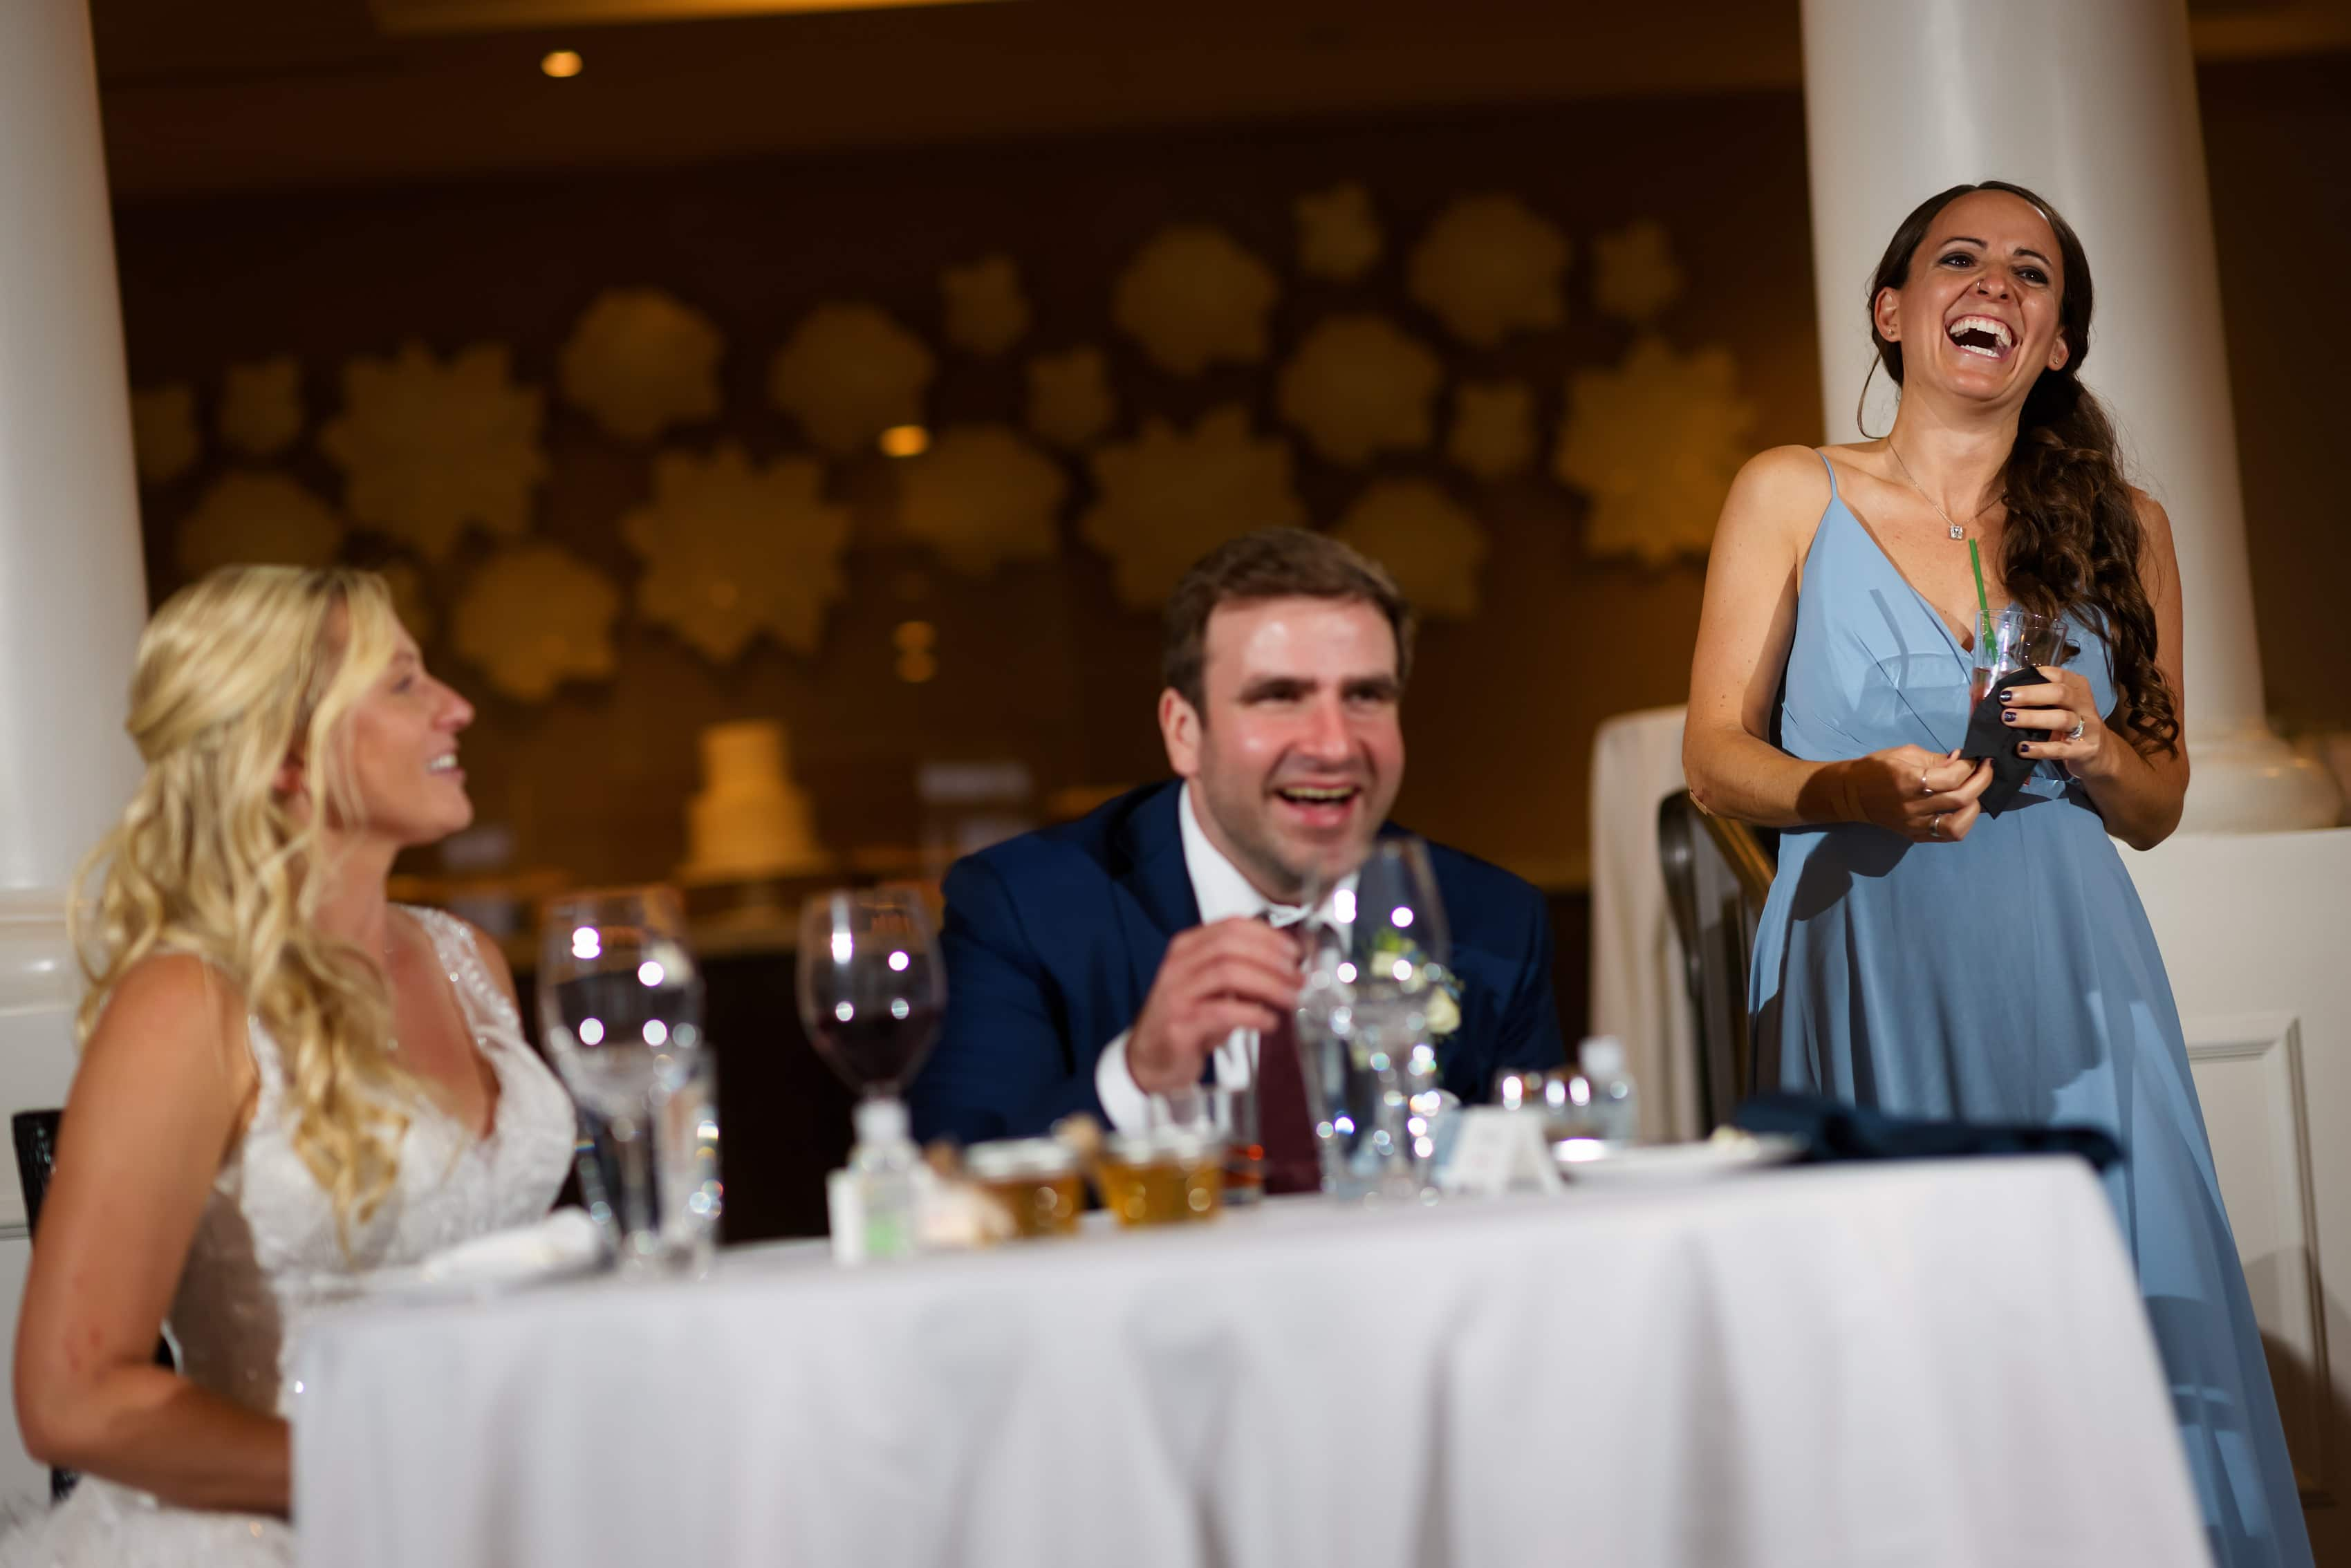 Bridesmaid gives toast during wedding reception at Bay Harbor Inn in Petoskey, Michigan